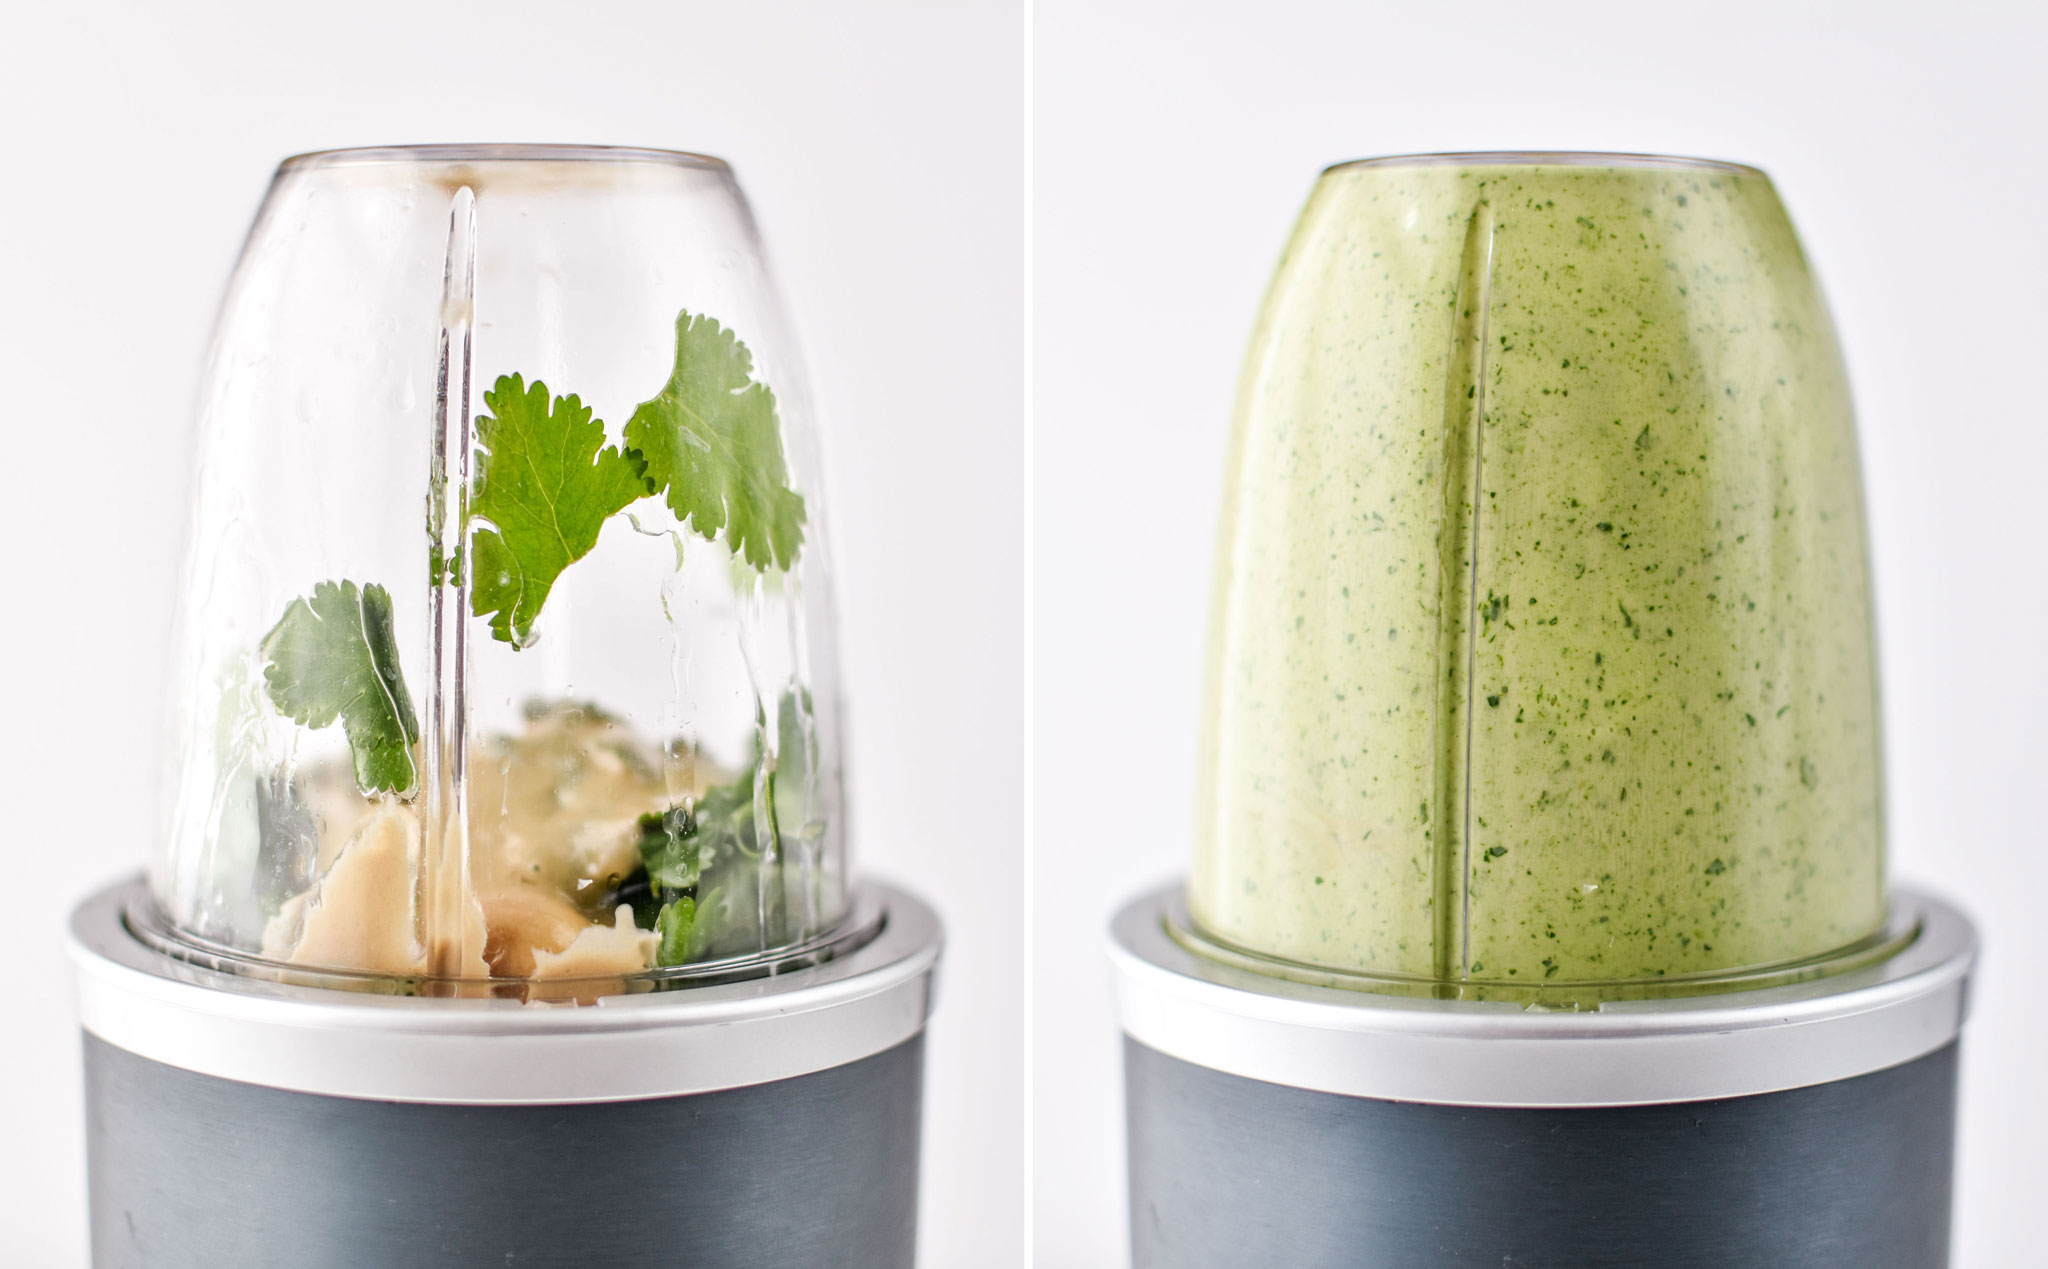 Before and after blending up the cilantro lime tahini dressing in a nutribullet